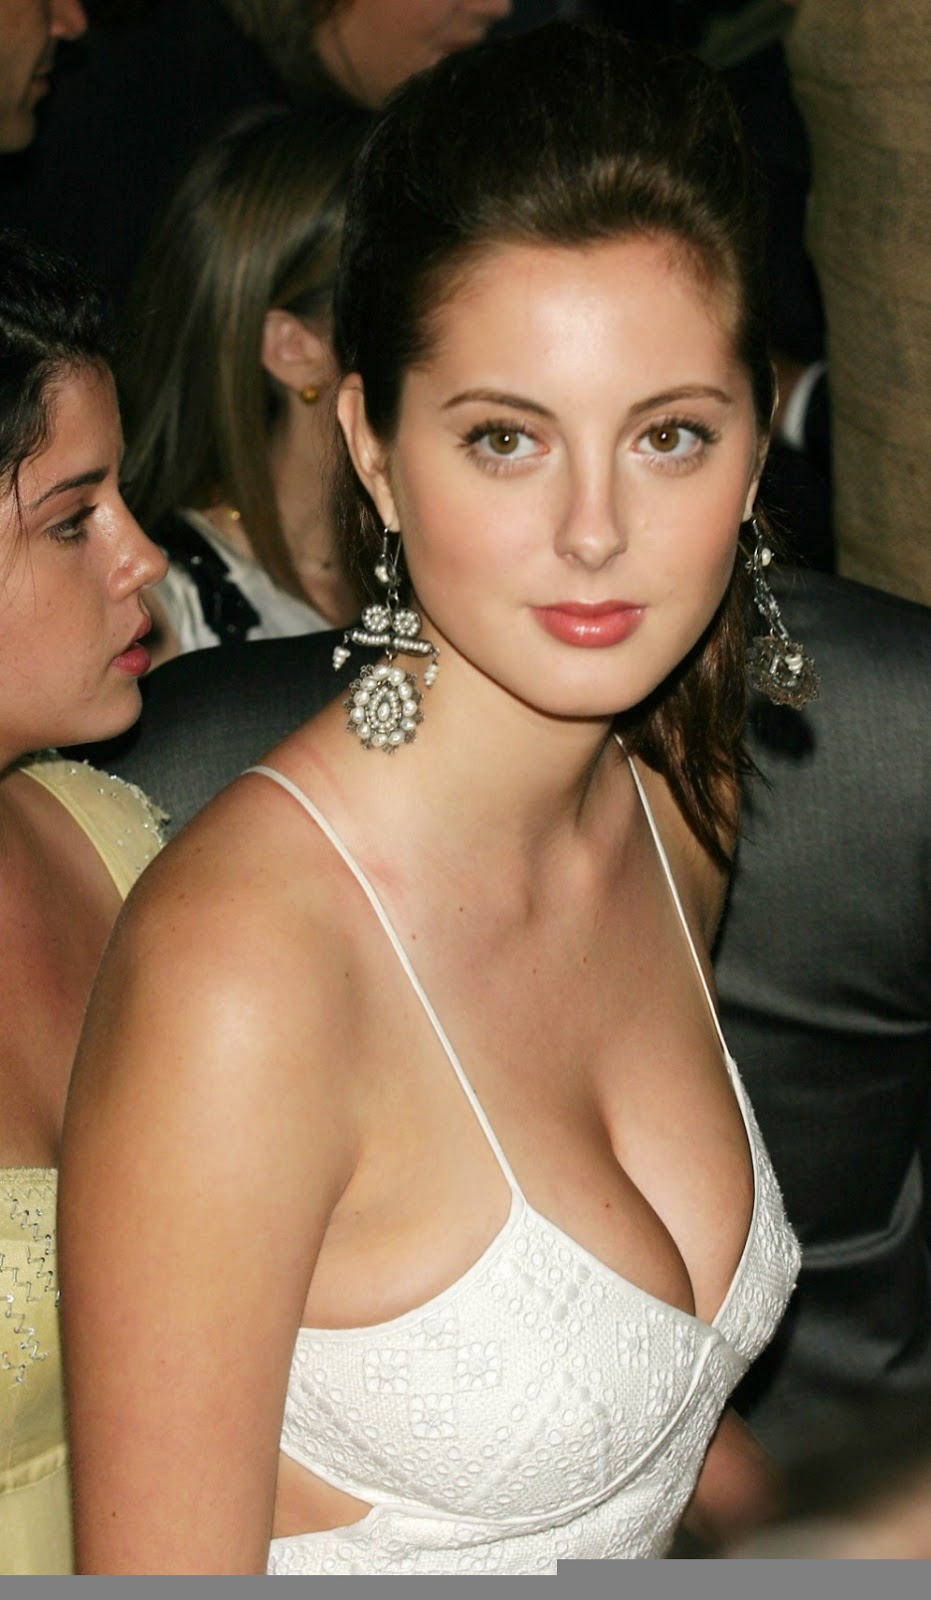 Cleavage Eva Amurri naked (99 photos), Ass, Bikini, Selfie, butt 2020